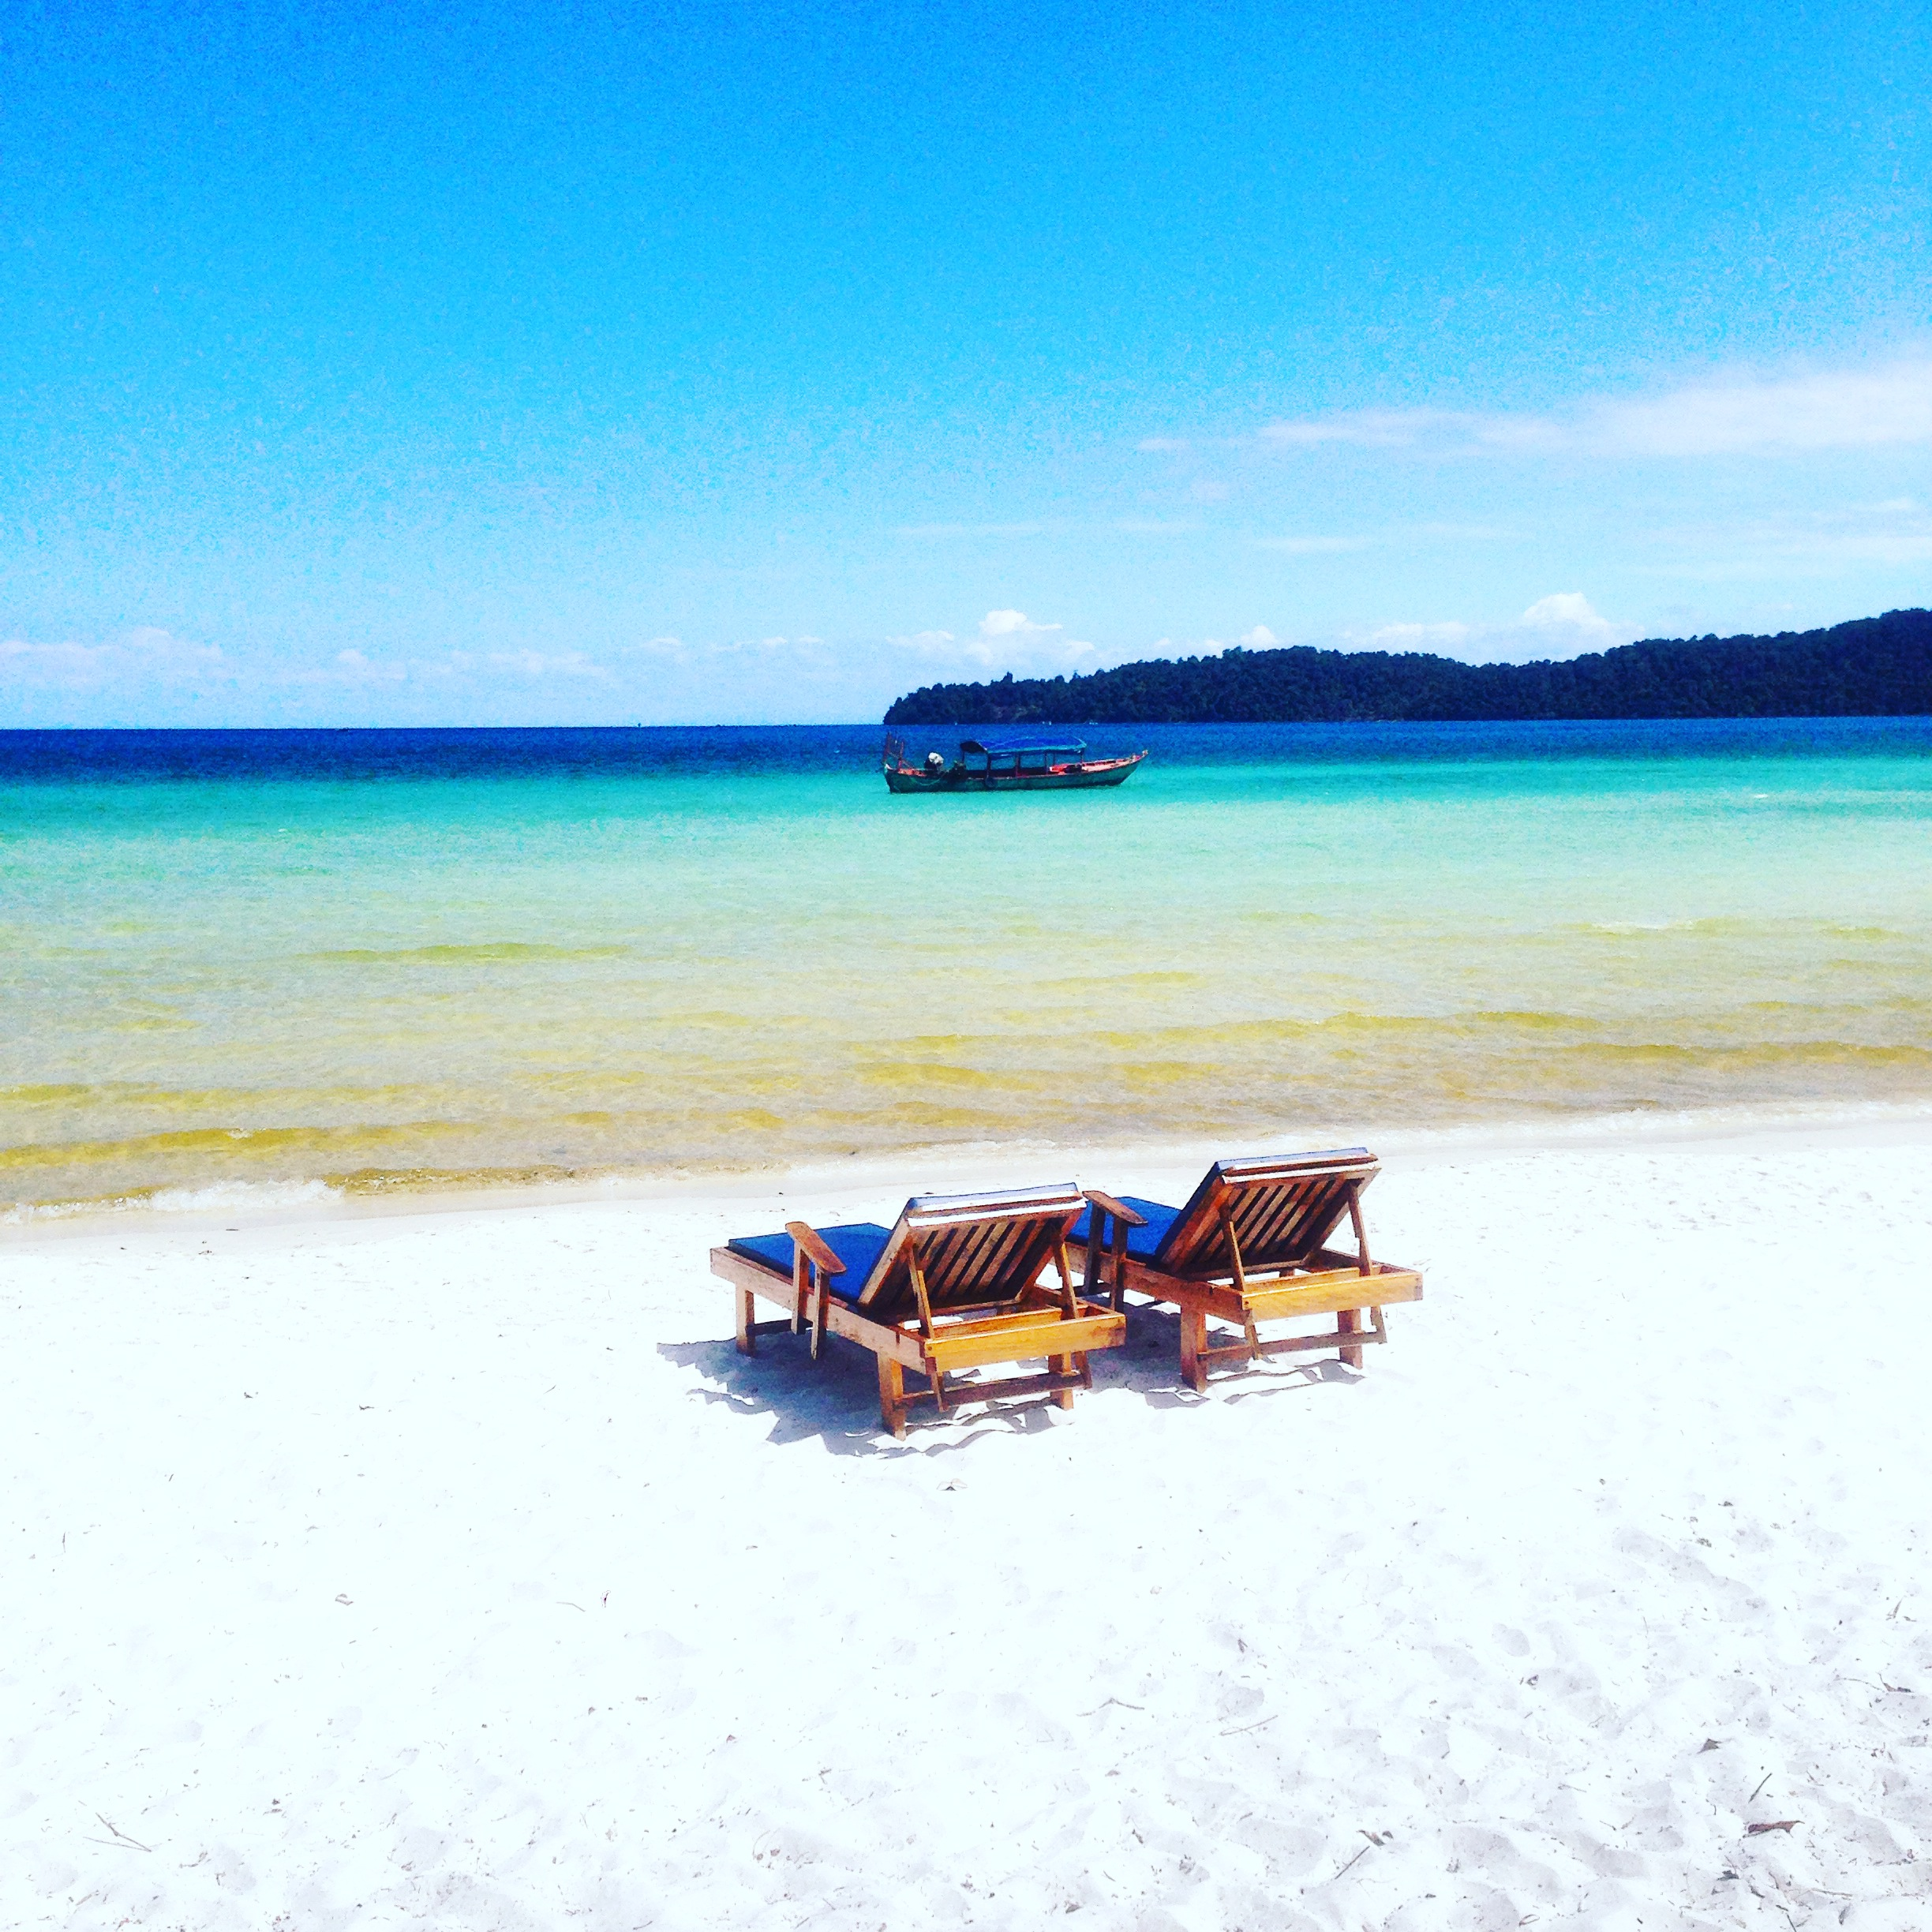 Koh Rong Sanloem Cambodia: Tropical Bounty Island with White Sandy Beaches that Cut you off with Technology and the Rest of the World